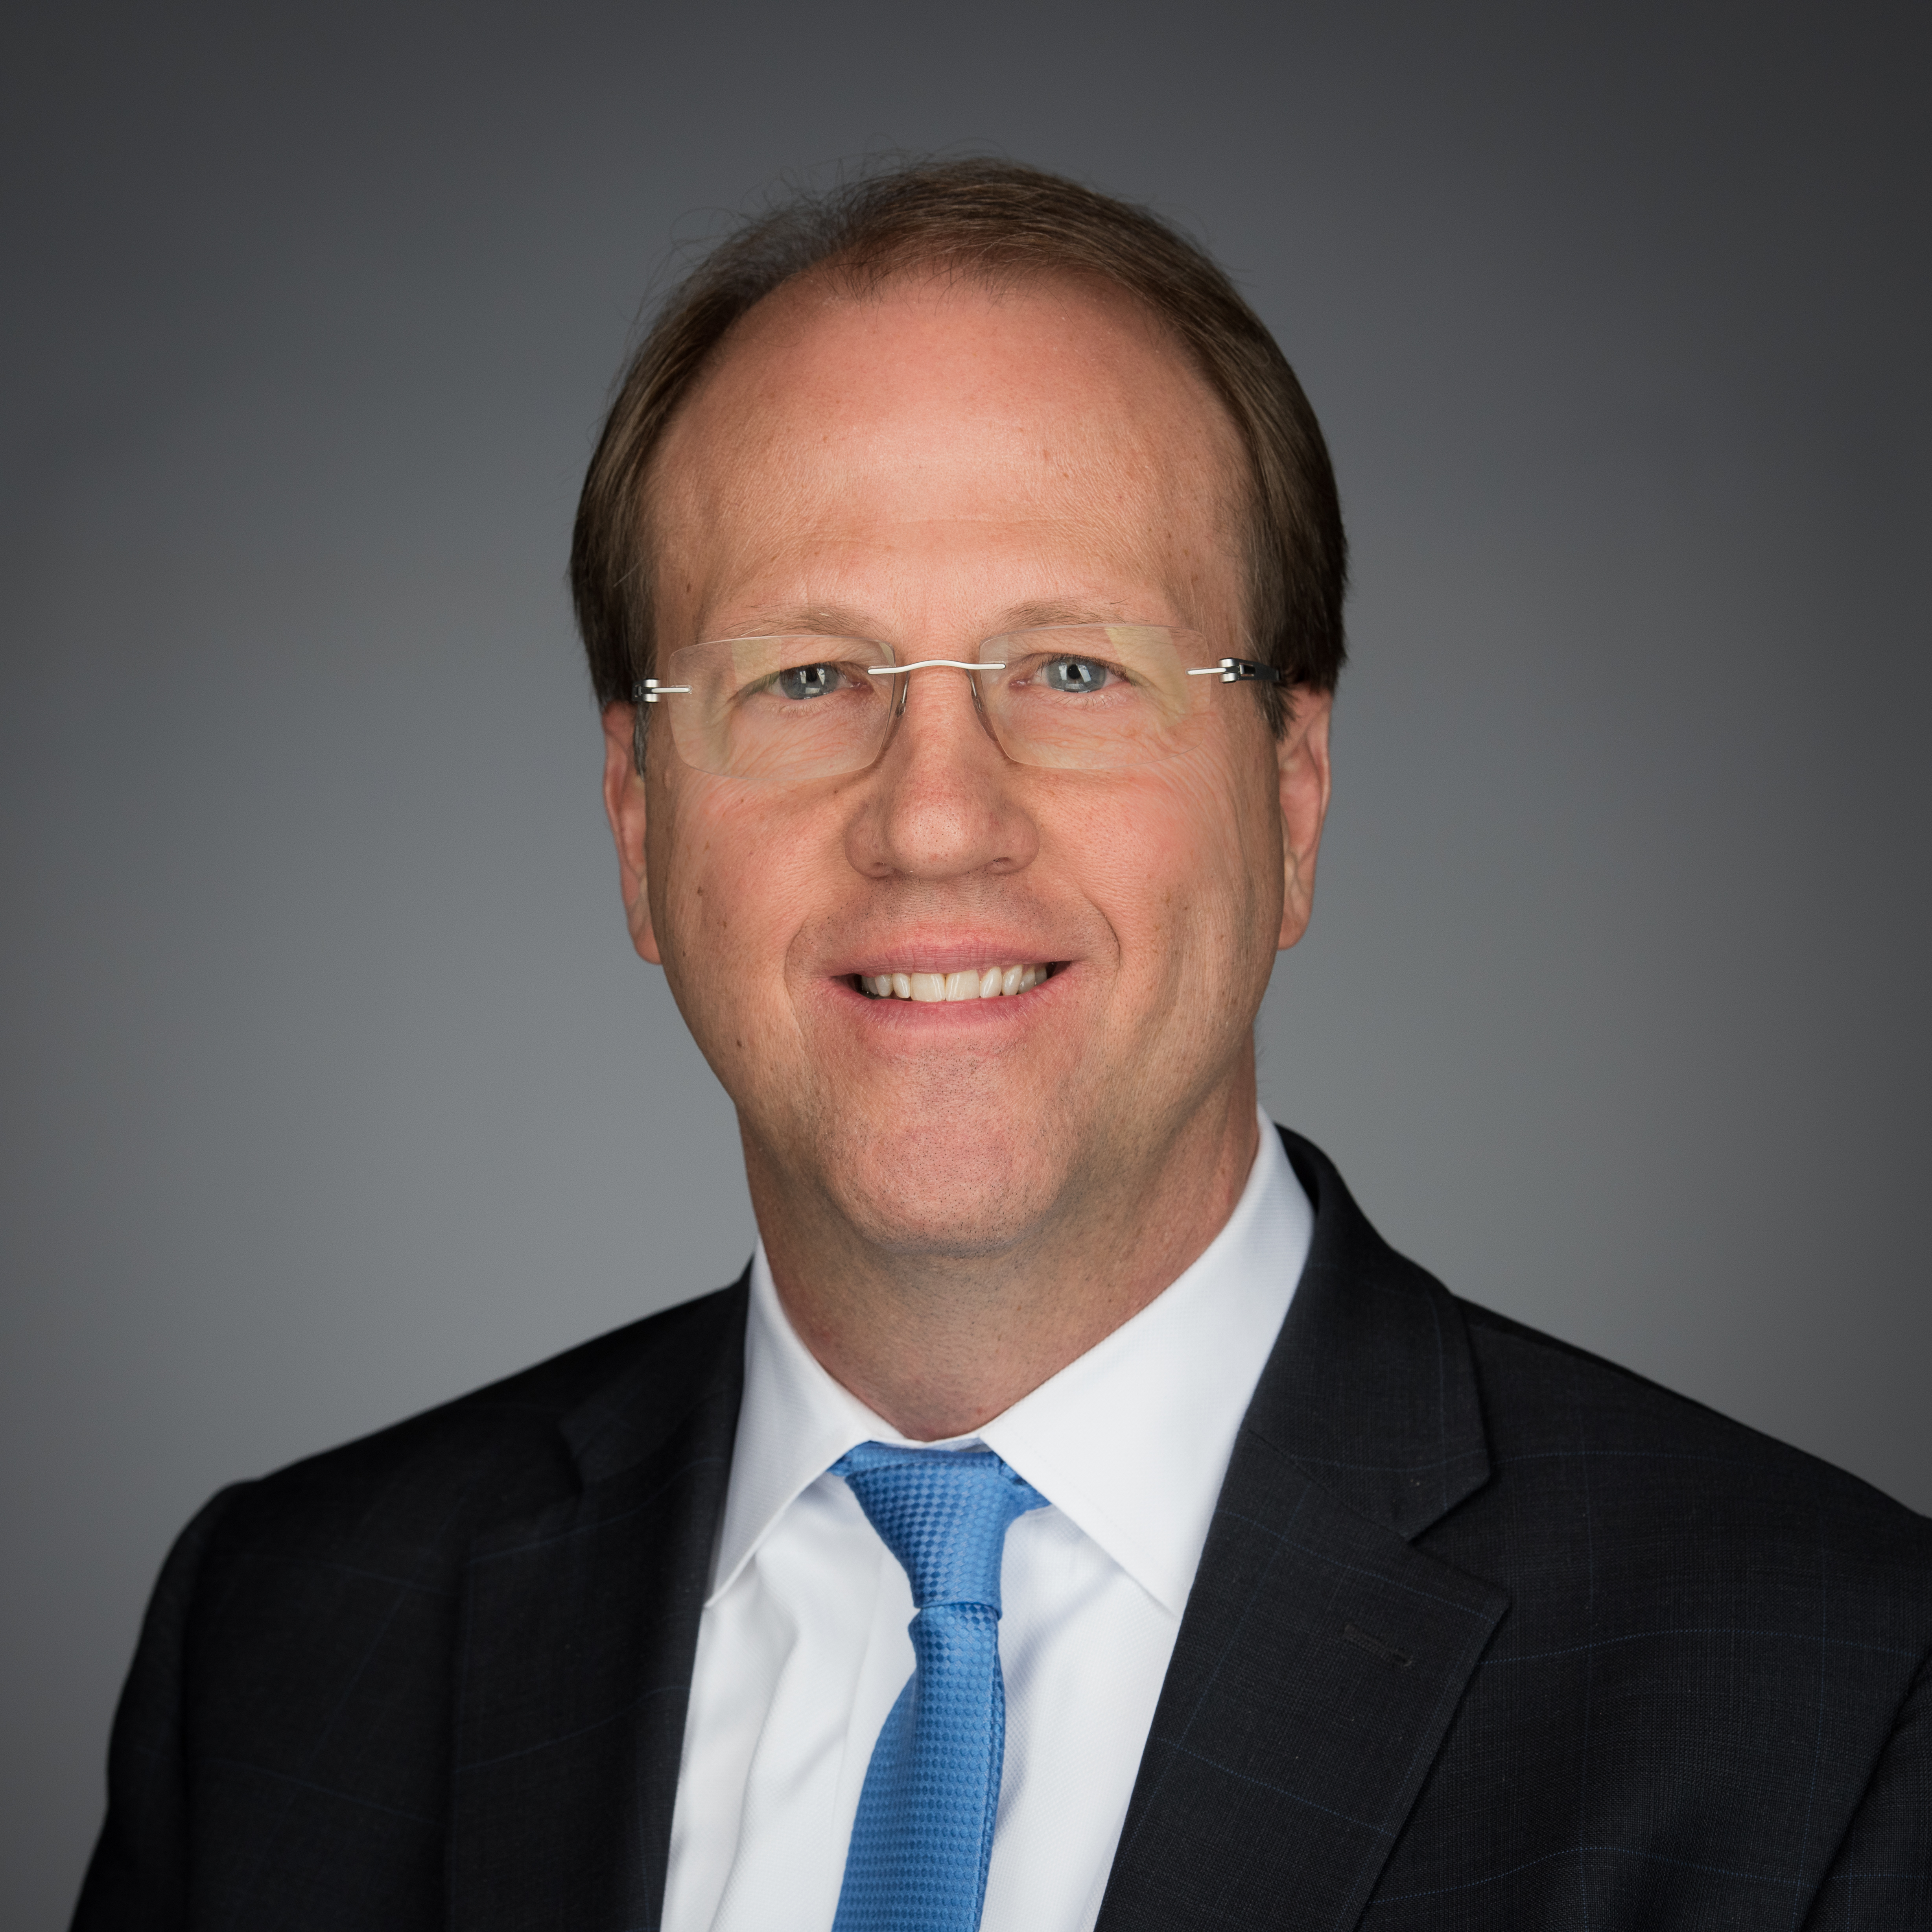 Rob Vallentine, global director of Corporate Citizenship for The Dow Chemical Co. as well as president and executive director of The Dow Chemical Co. Foundation